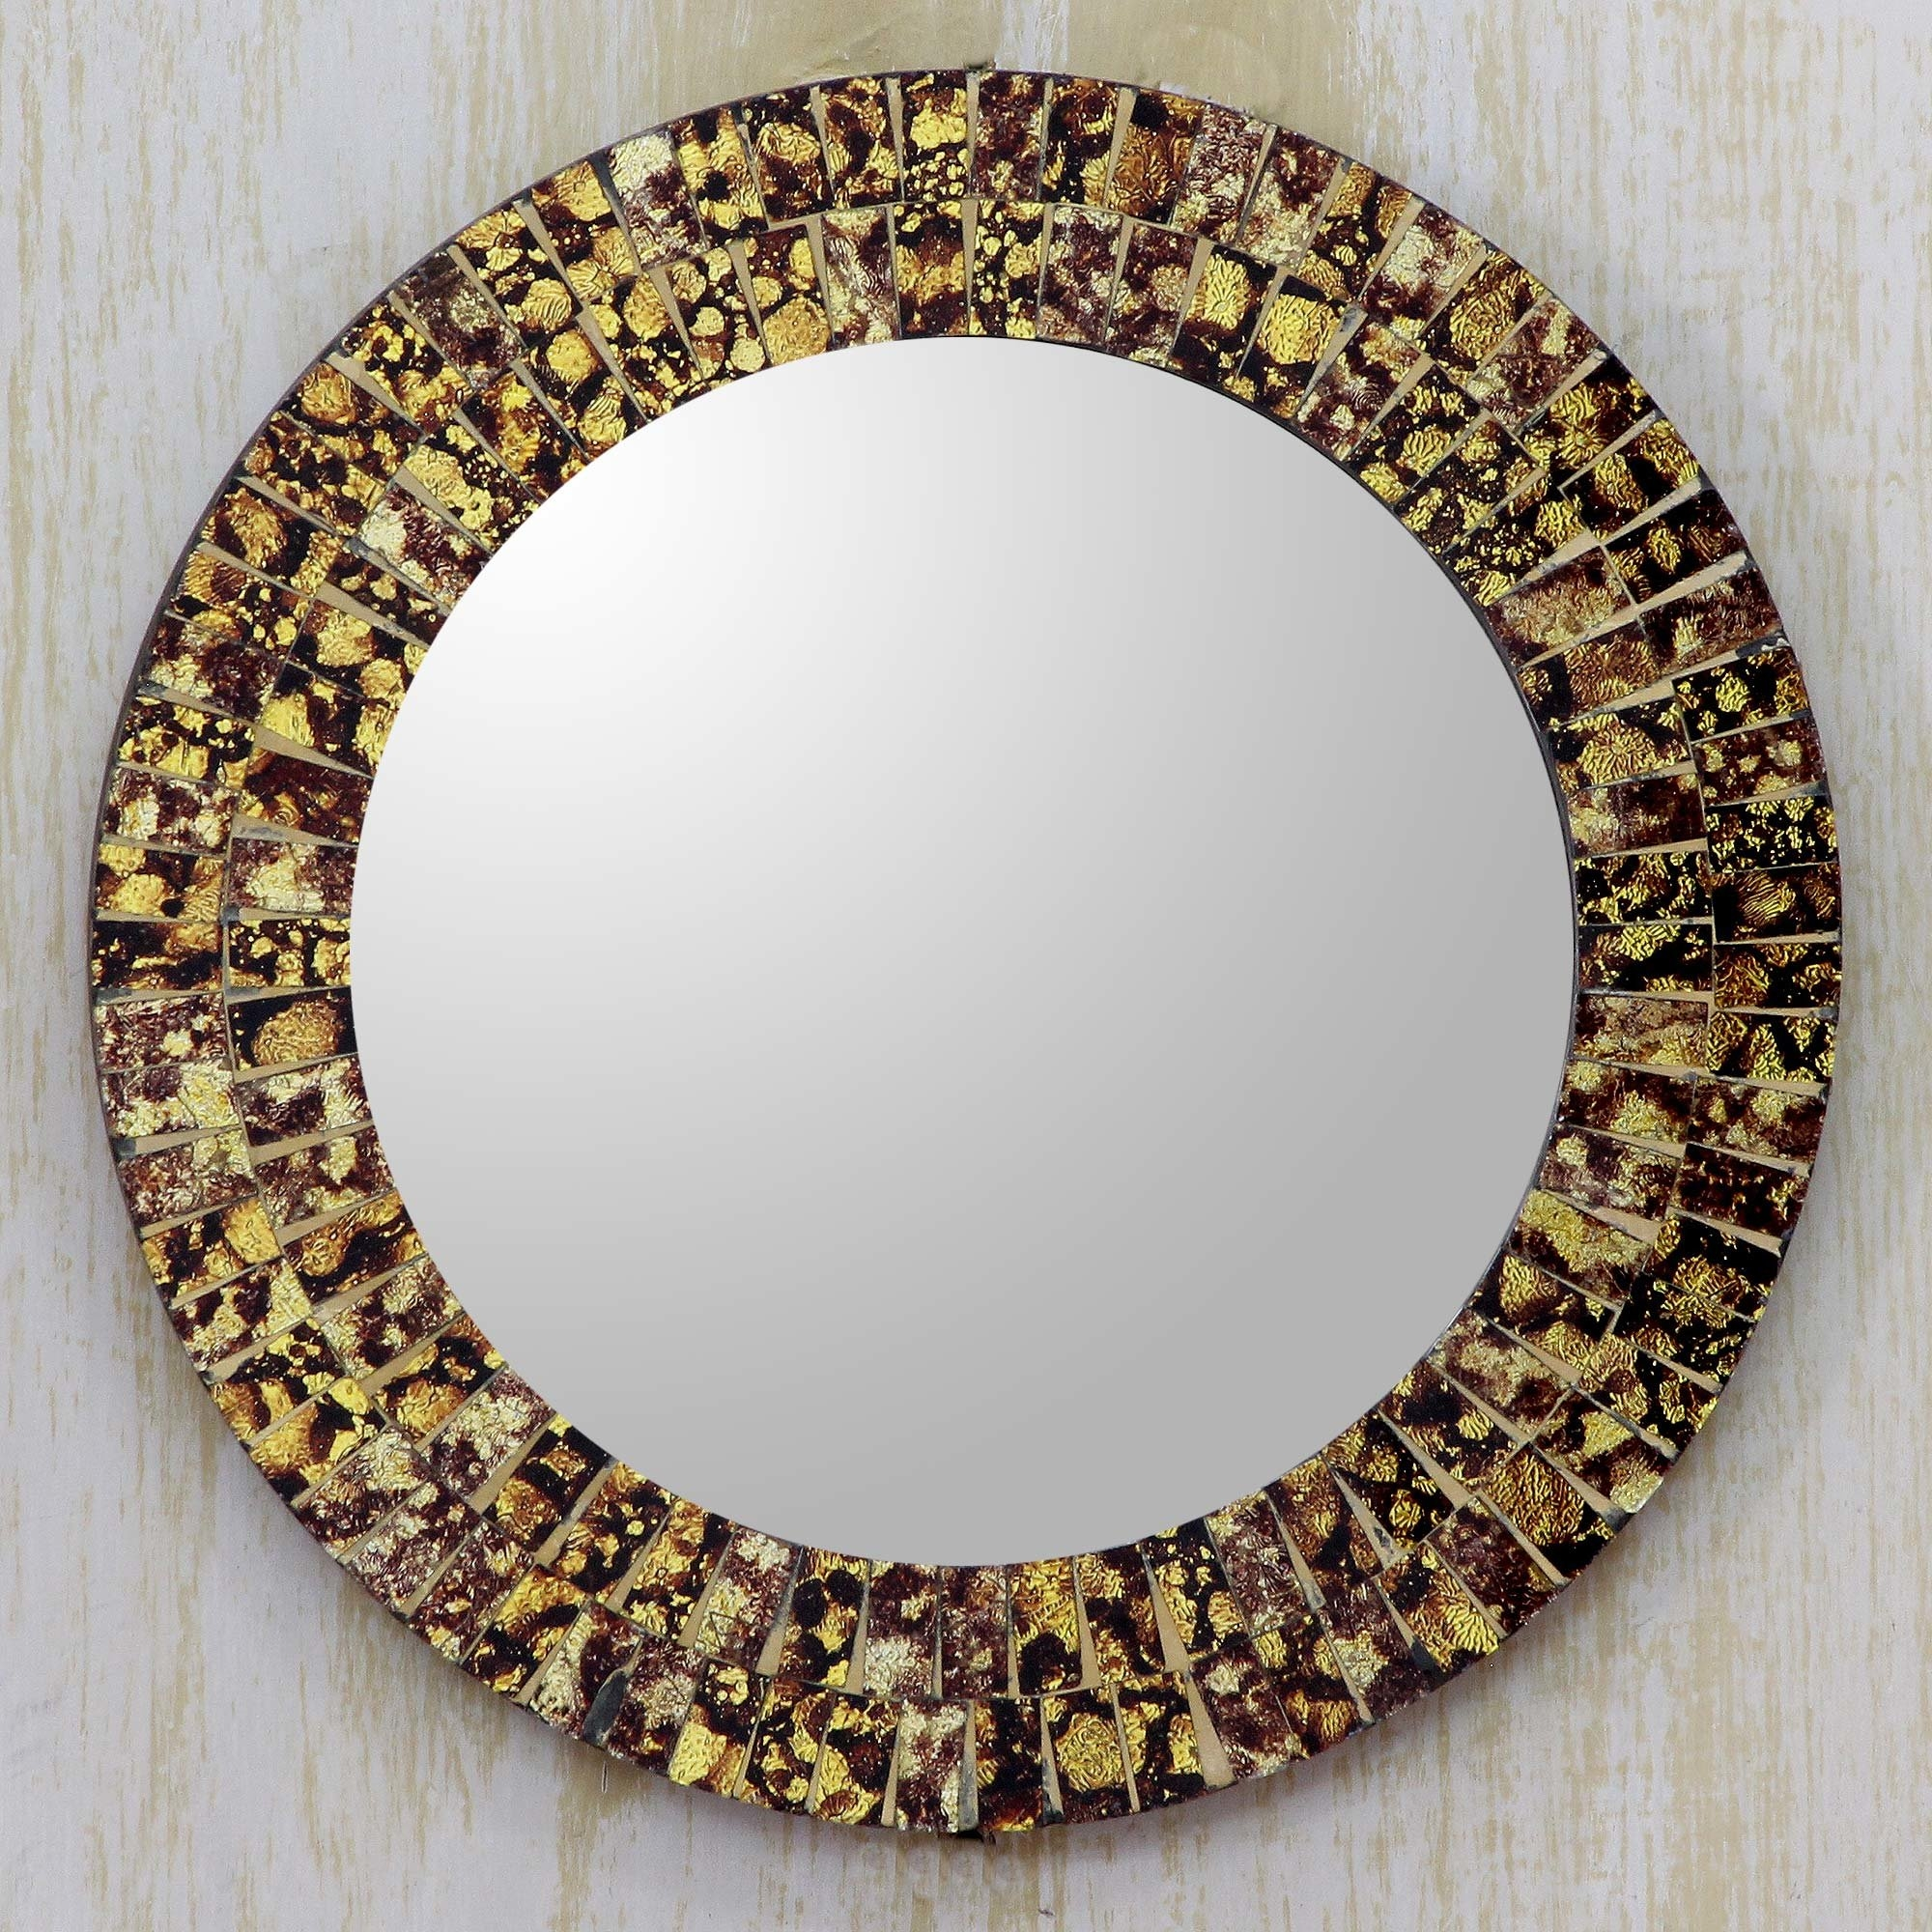 Novica Round Wall Or Table Mirror With Glass Mosaic Frame Wayfair Regarding Round Mosaic Wall Mirror (Image 11 of 15)